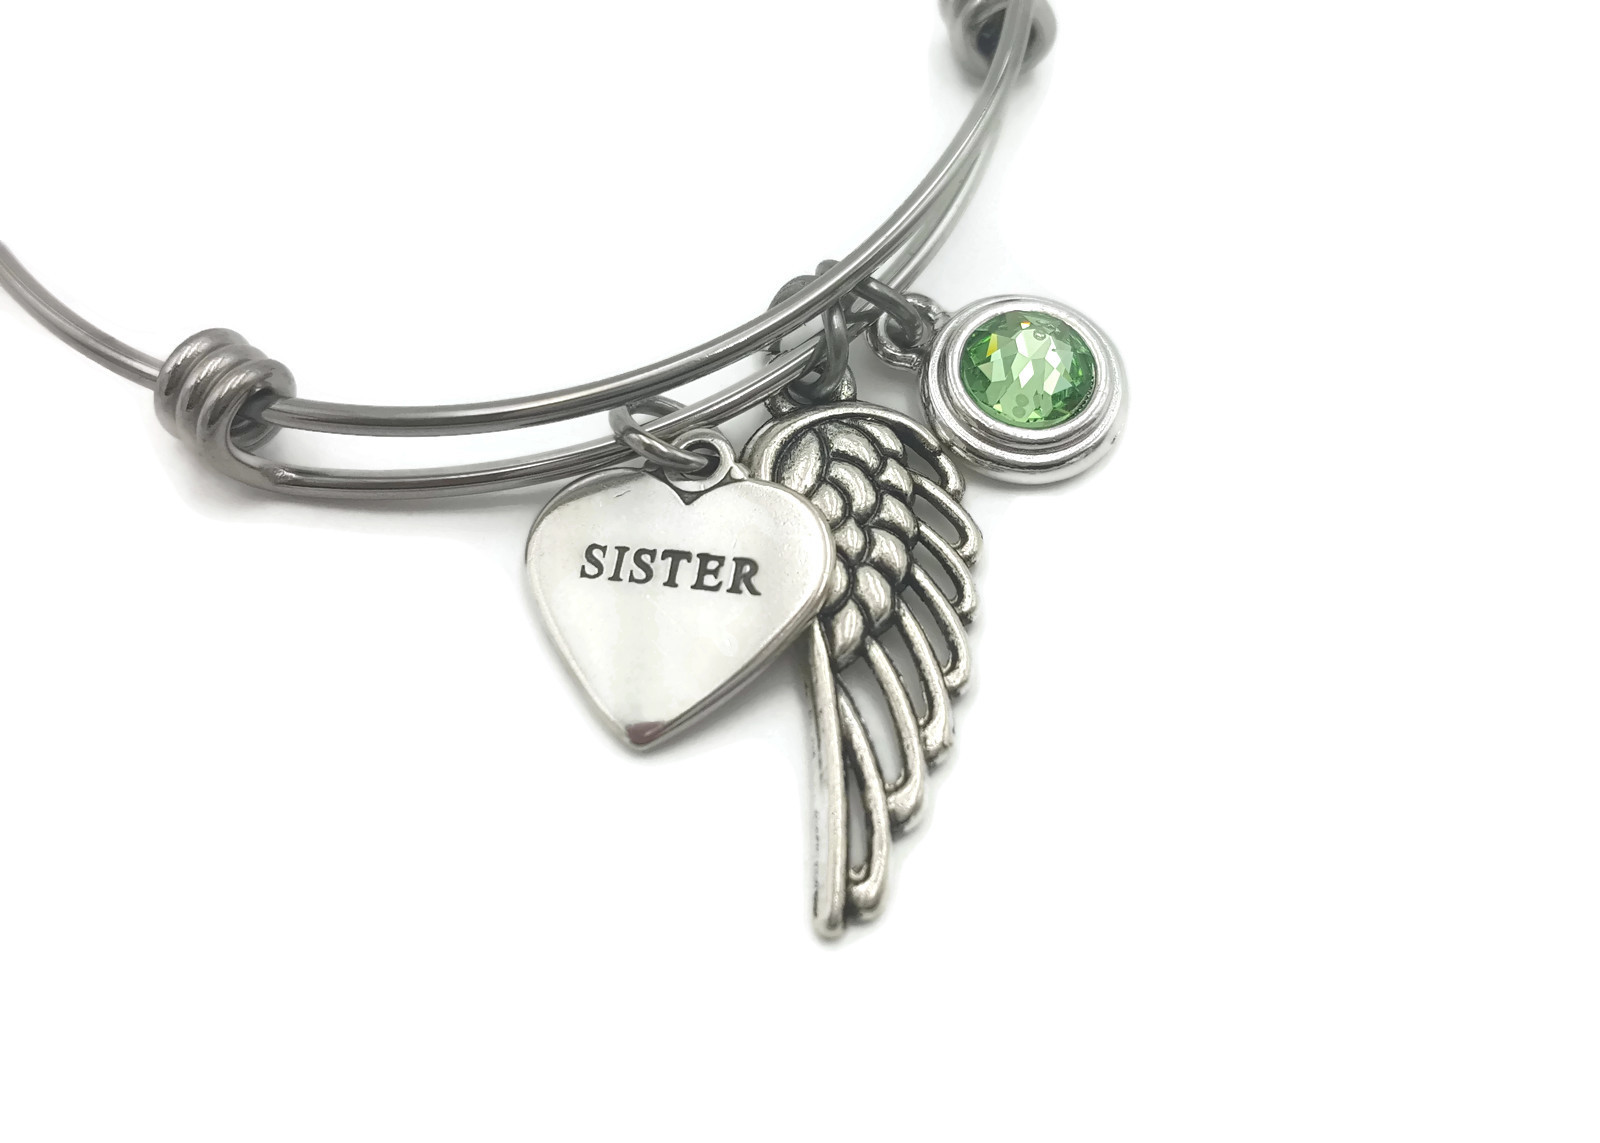 In Memory of Sister Memorial Bracelet - Memorial Gift Idea - Free Shipping